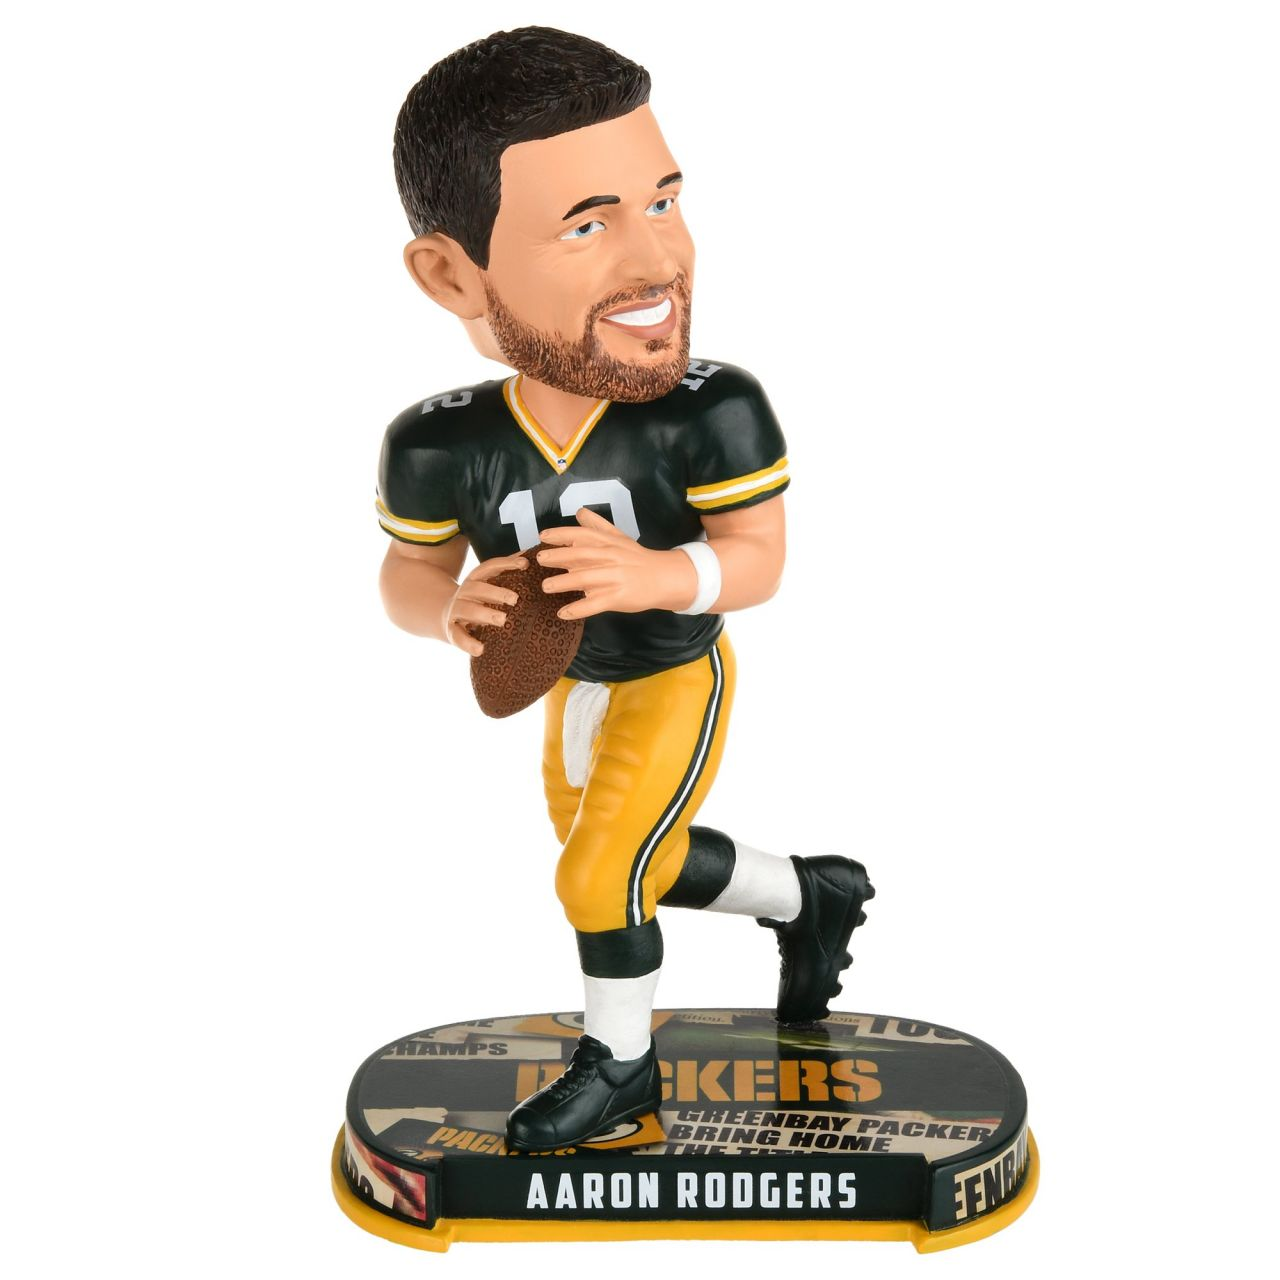 amfoo - Aaron Rodgers #12 Bobblehead NFL Green Bay Packers